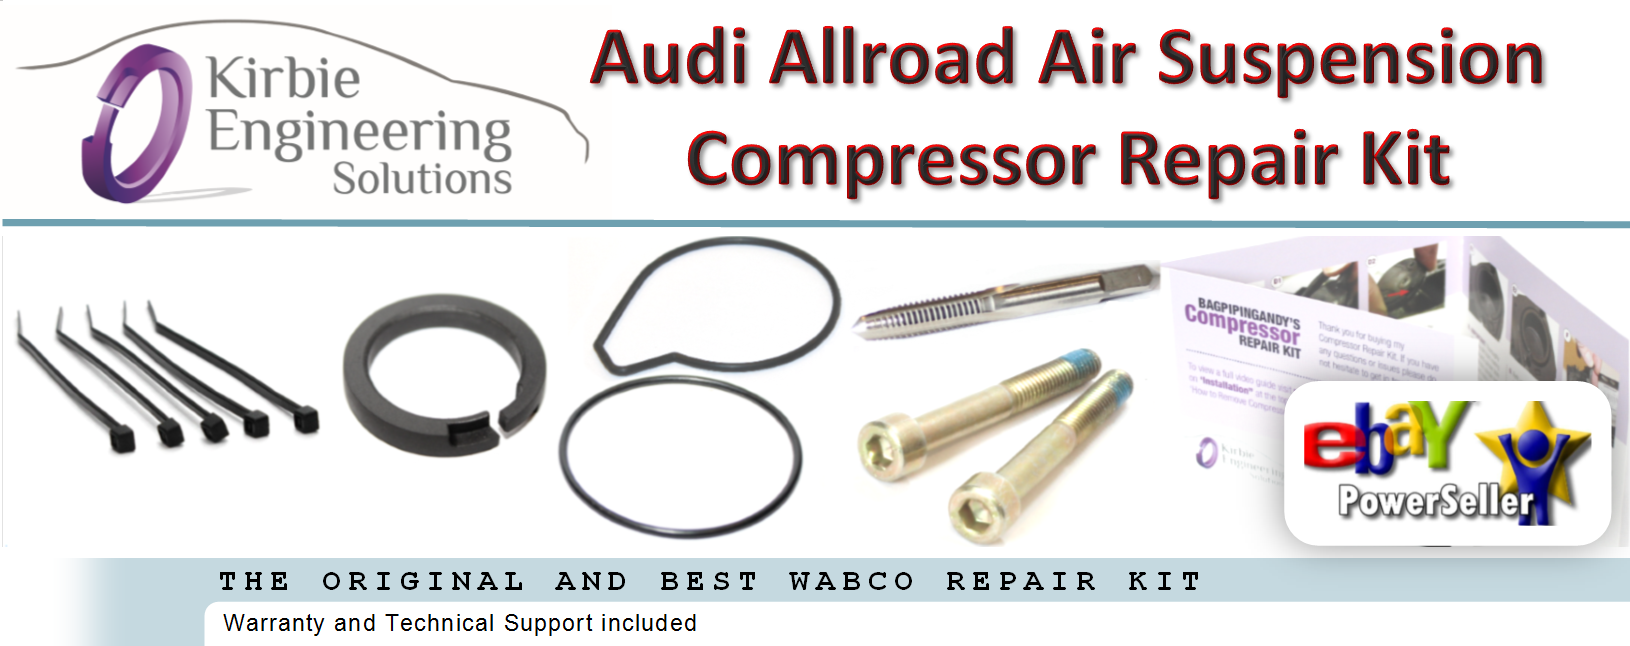 Details about Audi Allroad Air Suspension Compressor Repair Kit